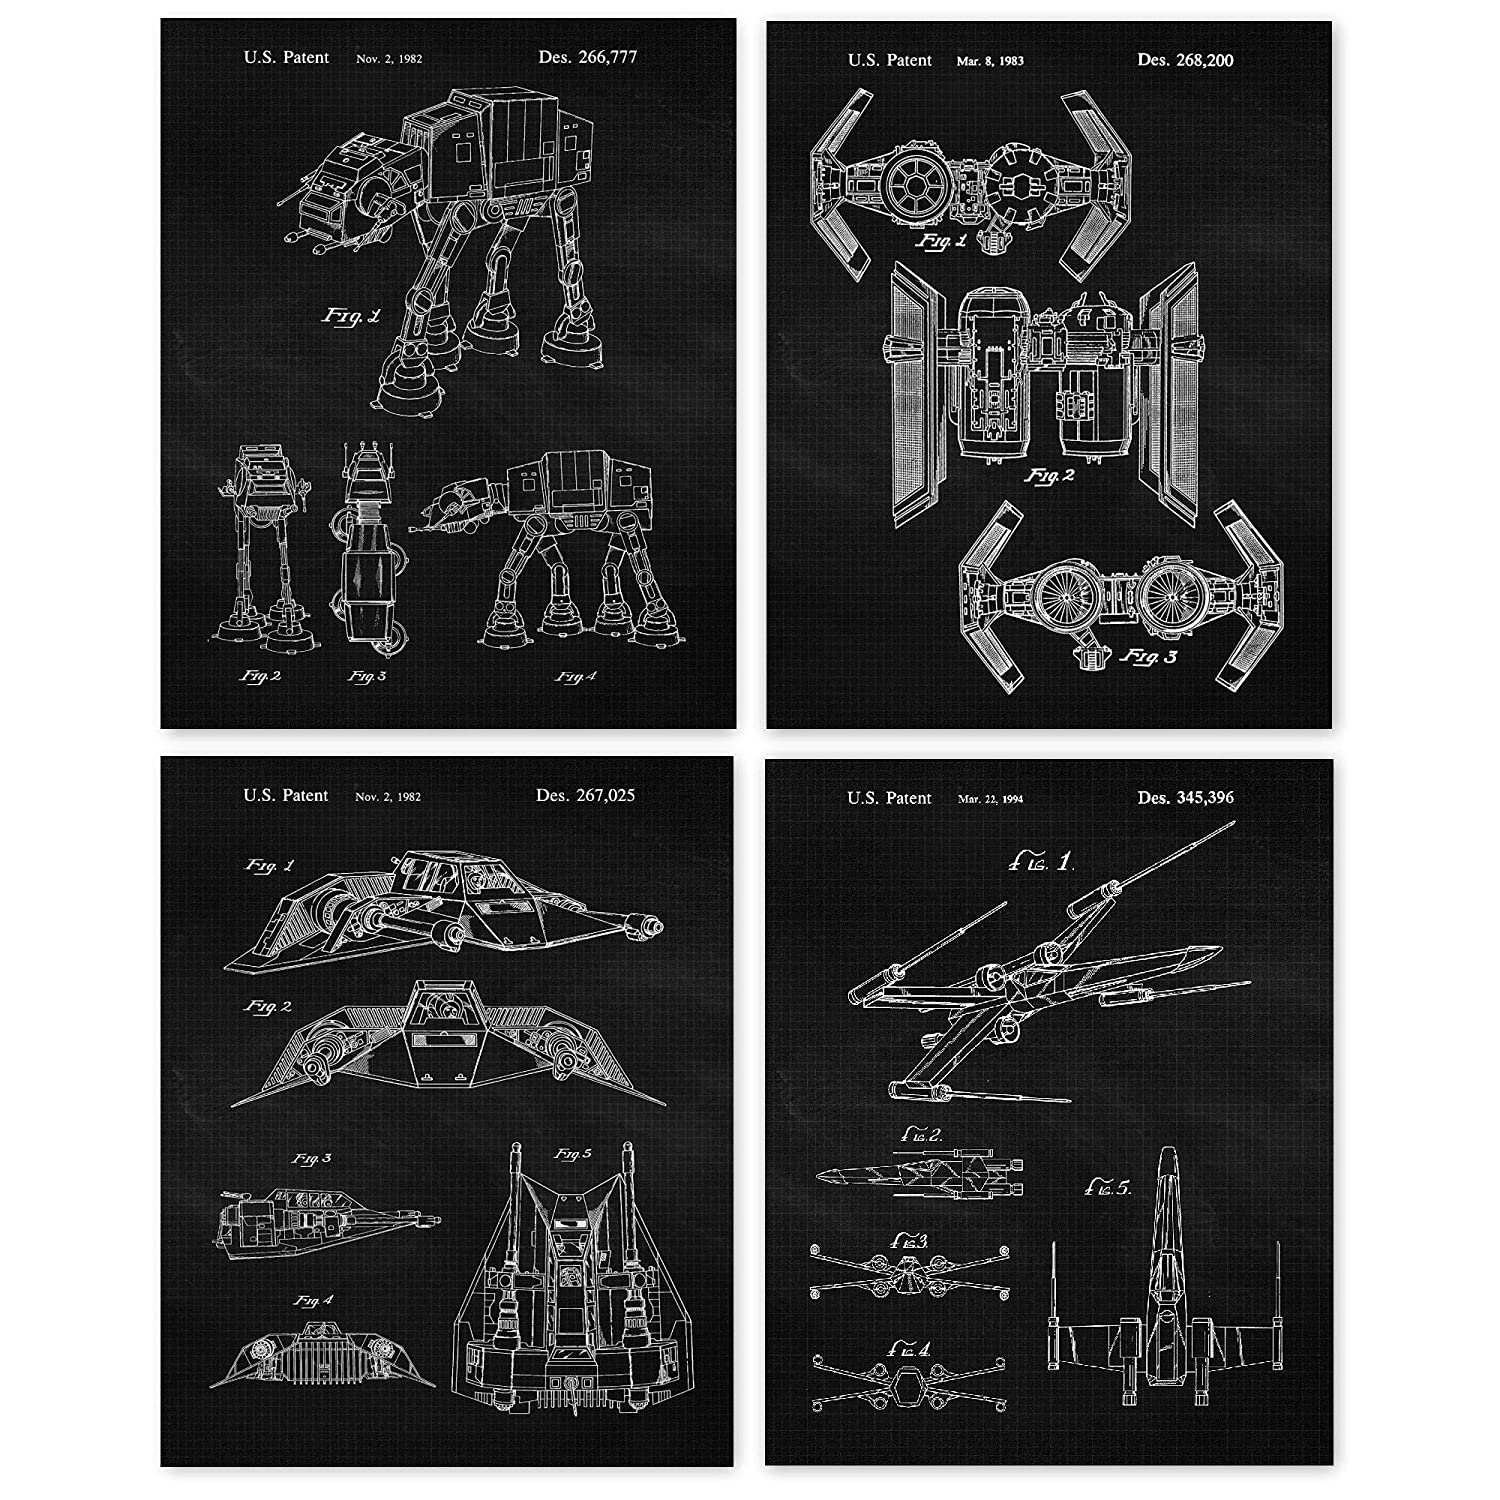 Vintage Star Wars Patent Poster Prints, Set of 4 Photos (8x10) Unframed, Great Wall Art Decor Gifts Under 20 for Home, Office, Studio, Garage, Man Cave, Shop, Student, Teacher, Comic-Con & Movies Fan